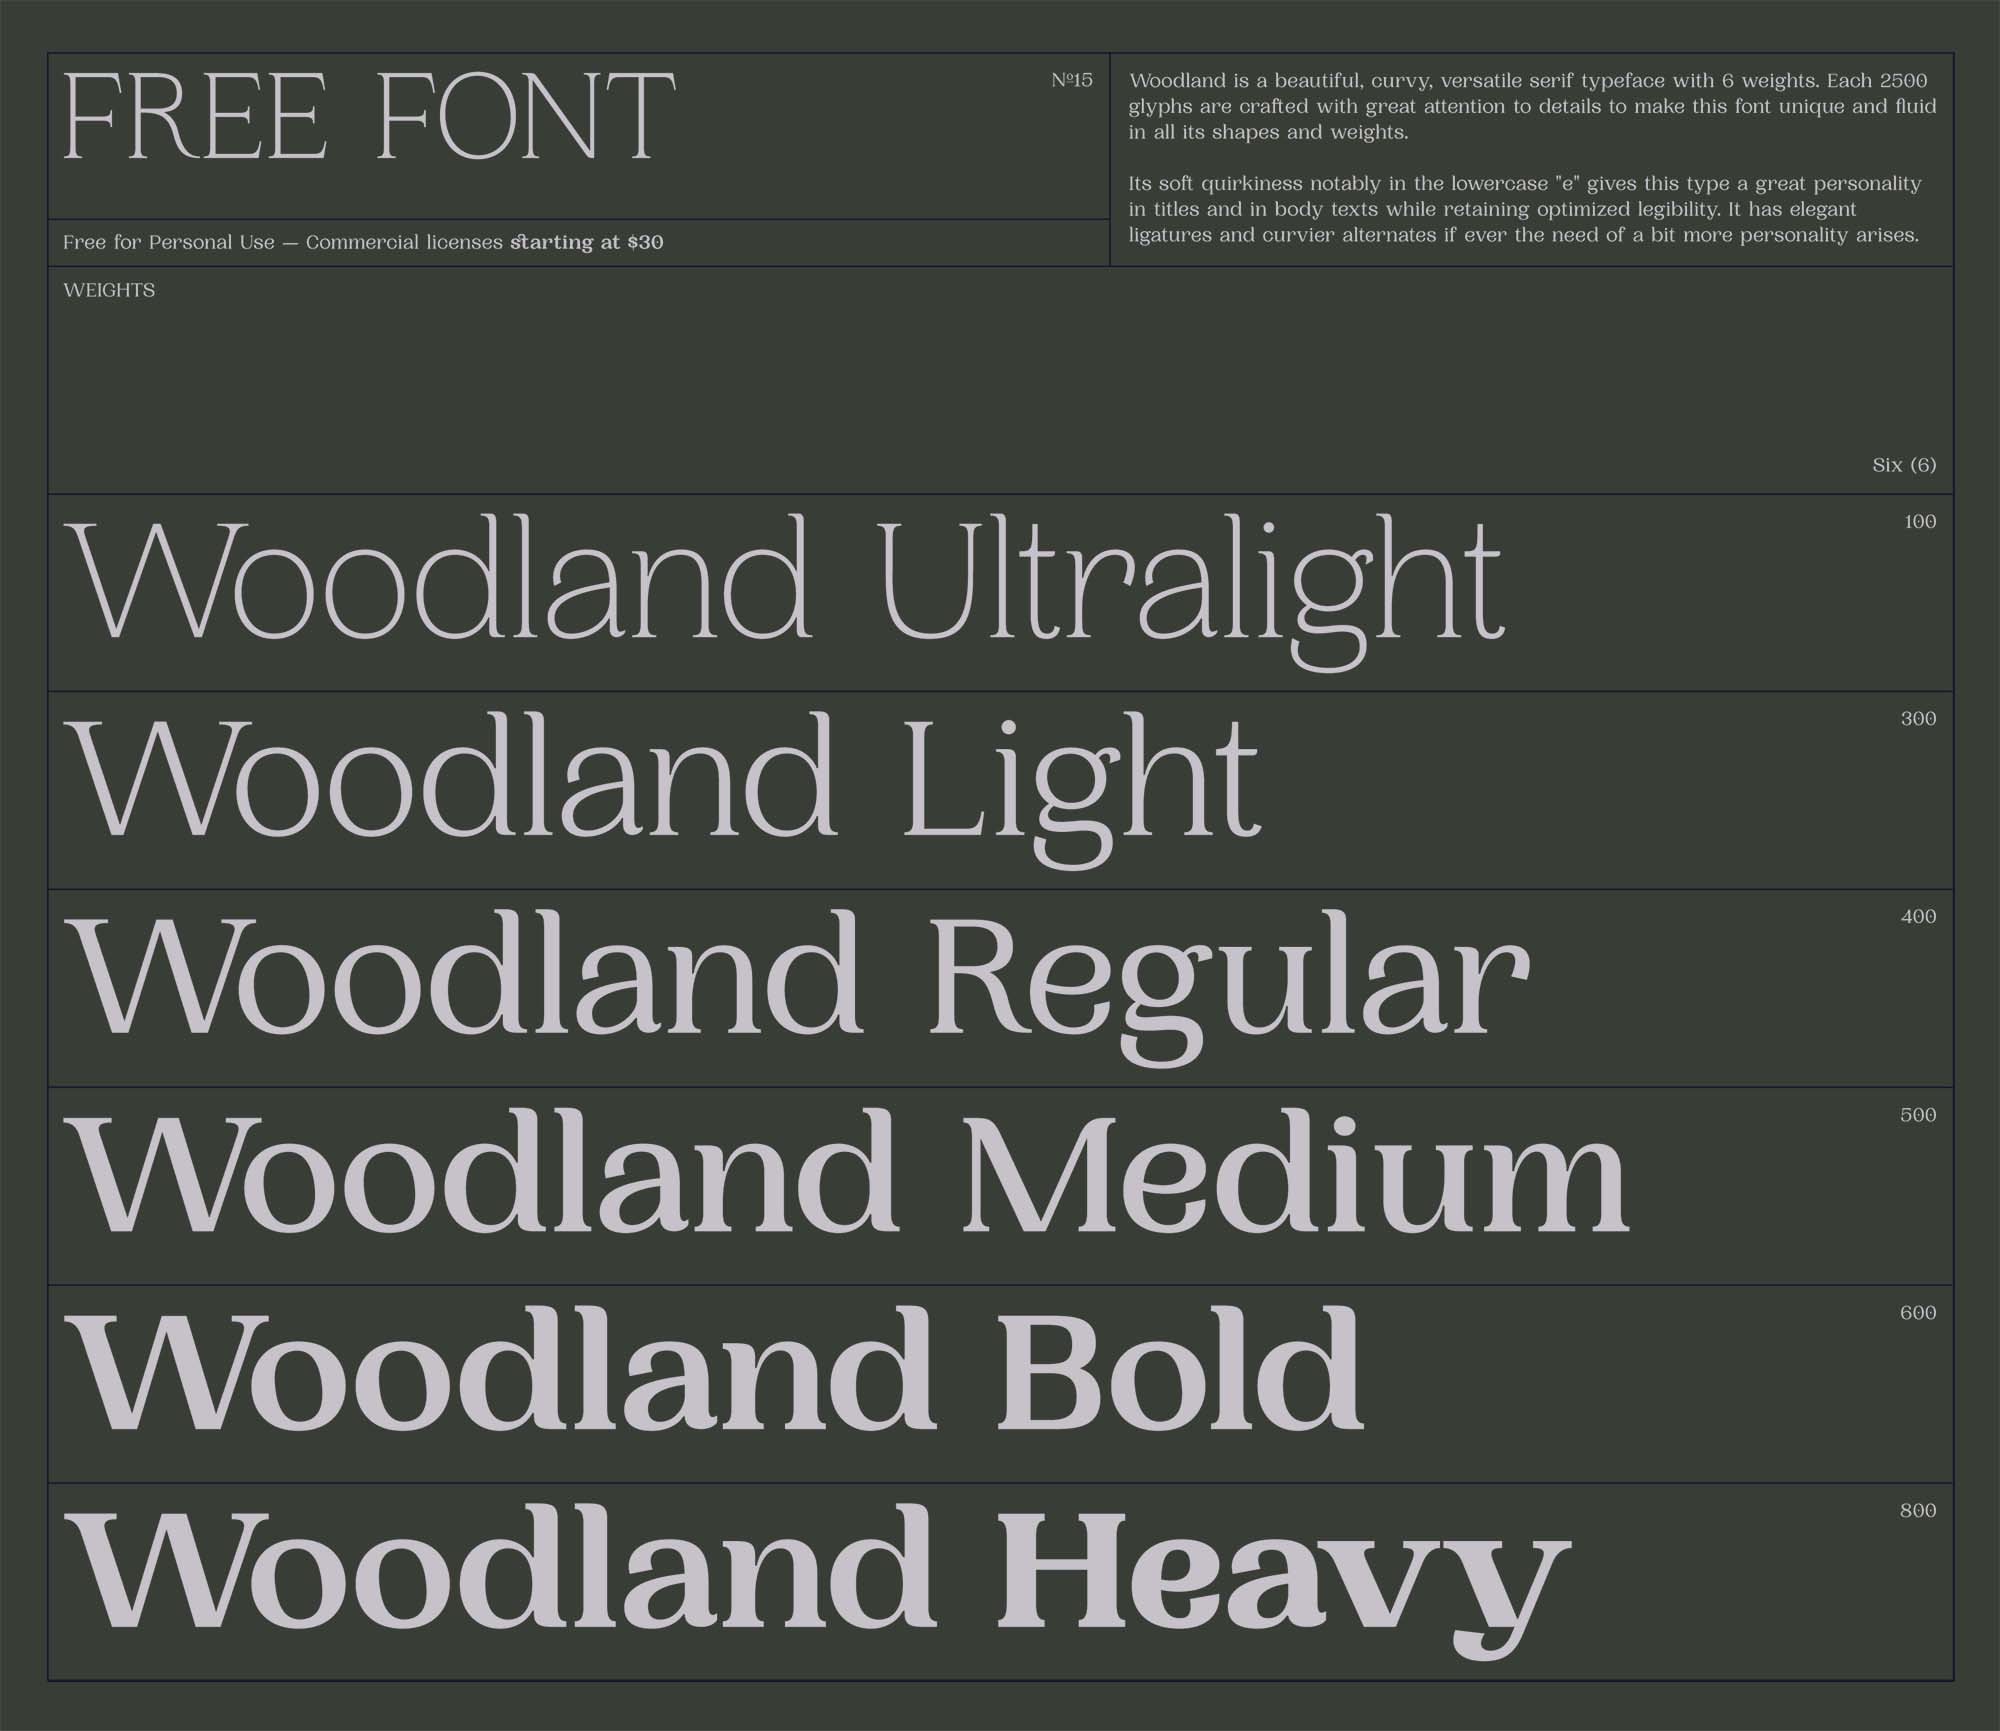 Woodland Serif Typeface Weights